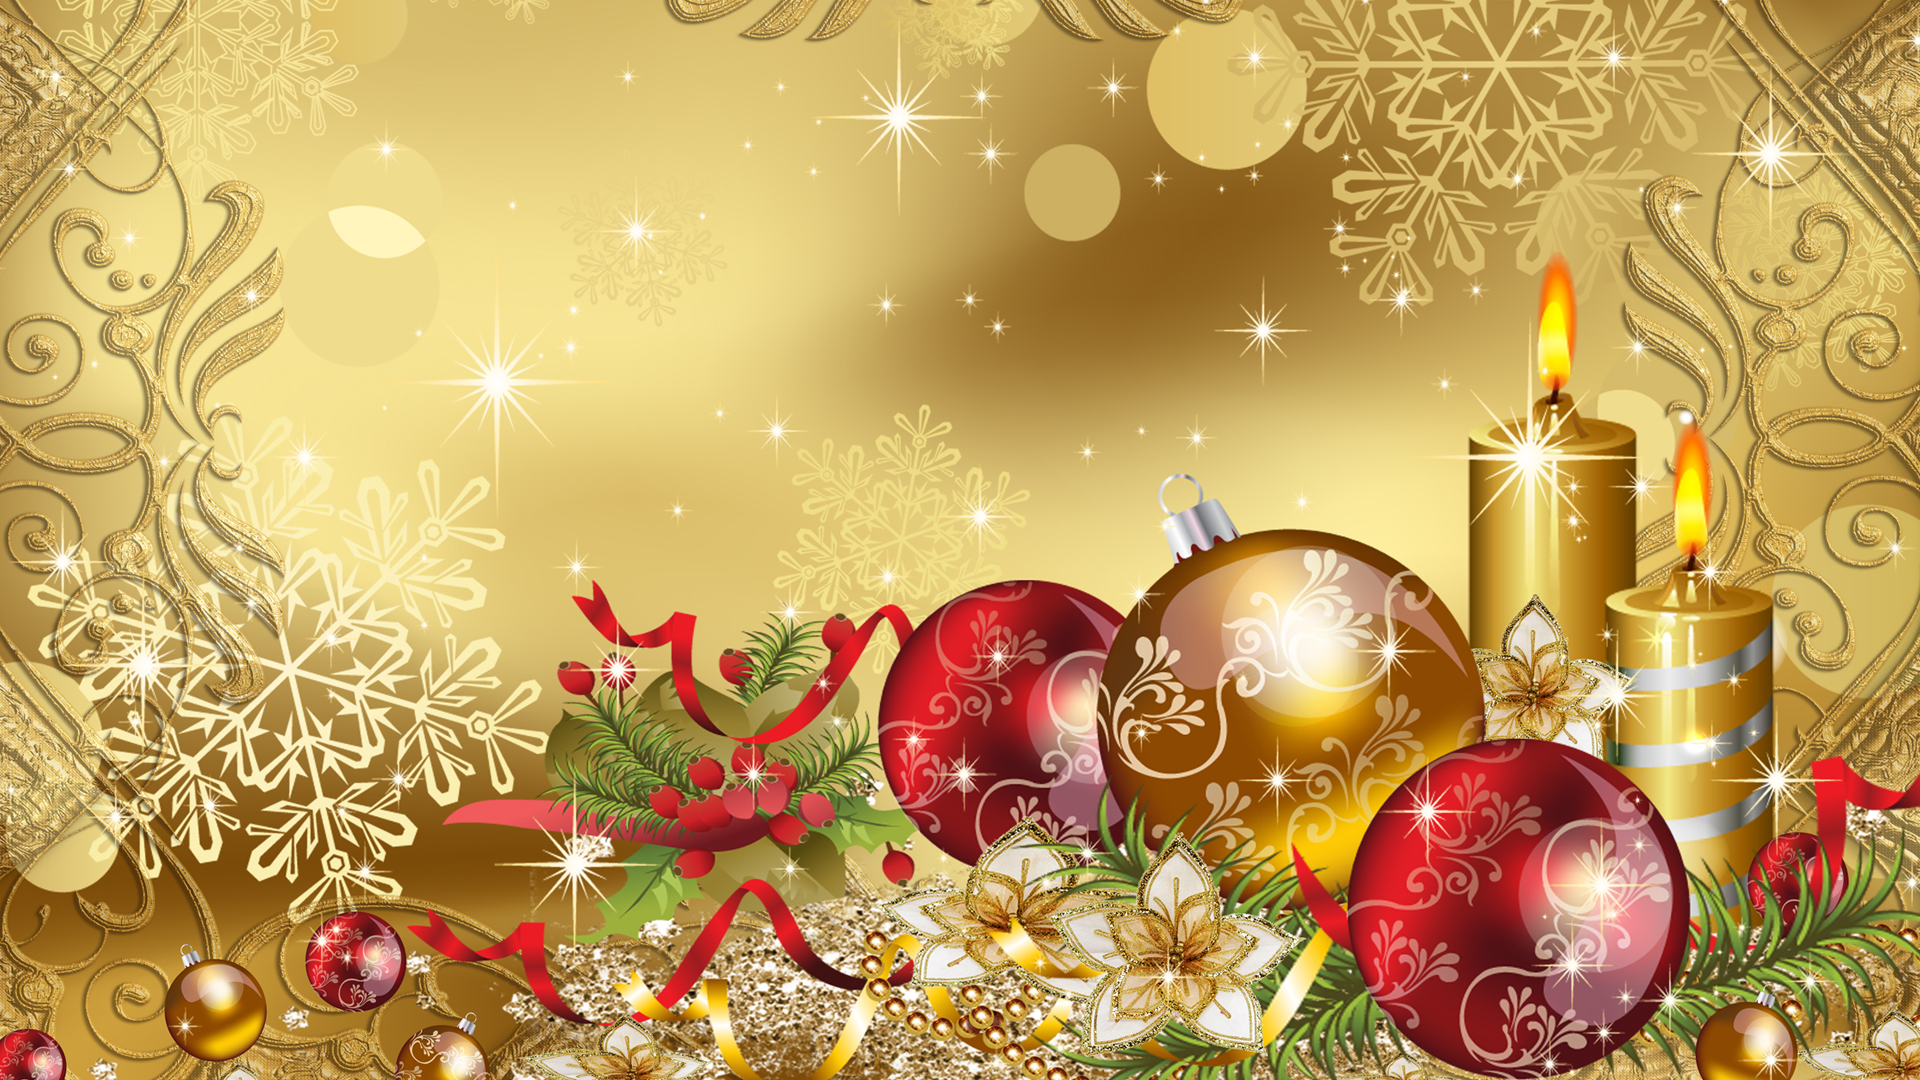 Beautiful Christmas Pictures - Christmas Wallpaper Backgrounds Gold , HD Wallpaper & Backgrounds